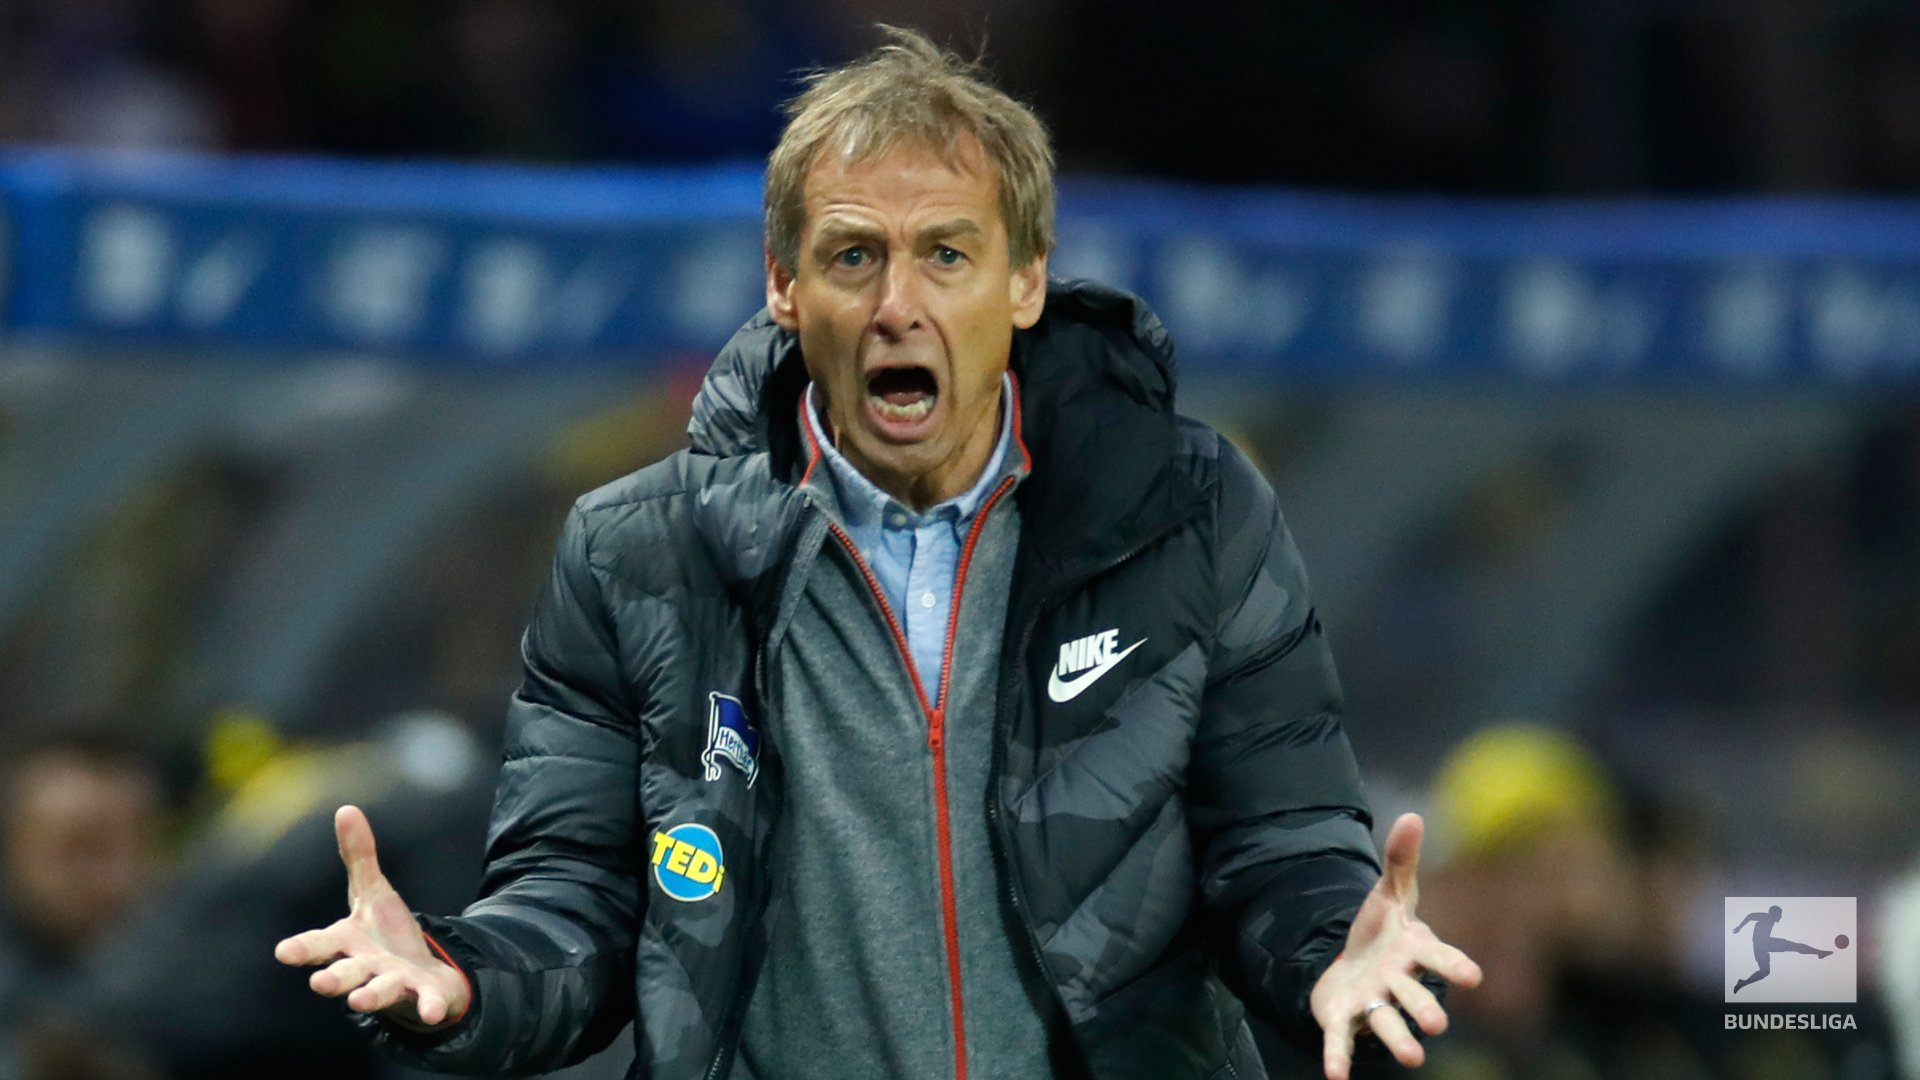 Klinsmann: It Feels Wonderful Being Back in Wonderful Bundesliga